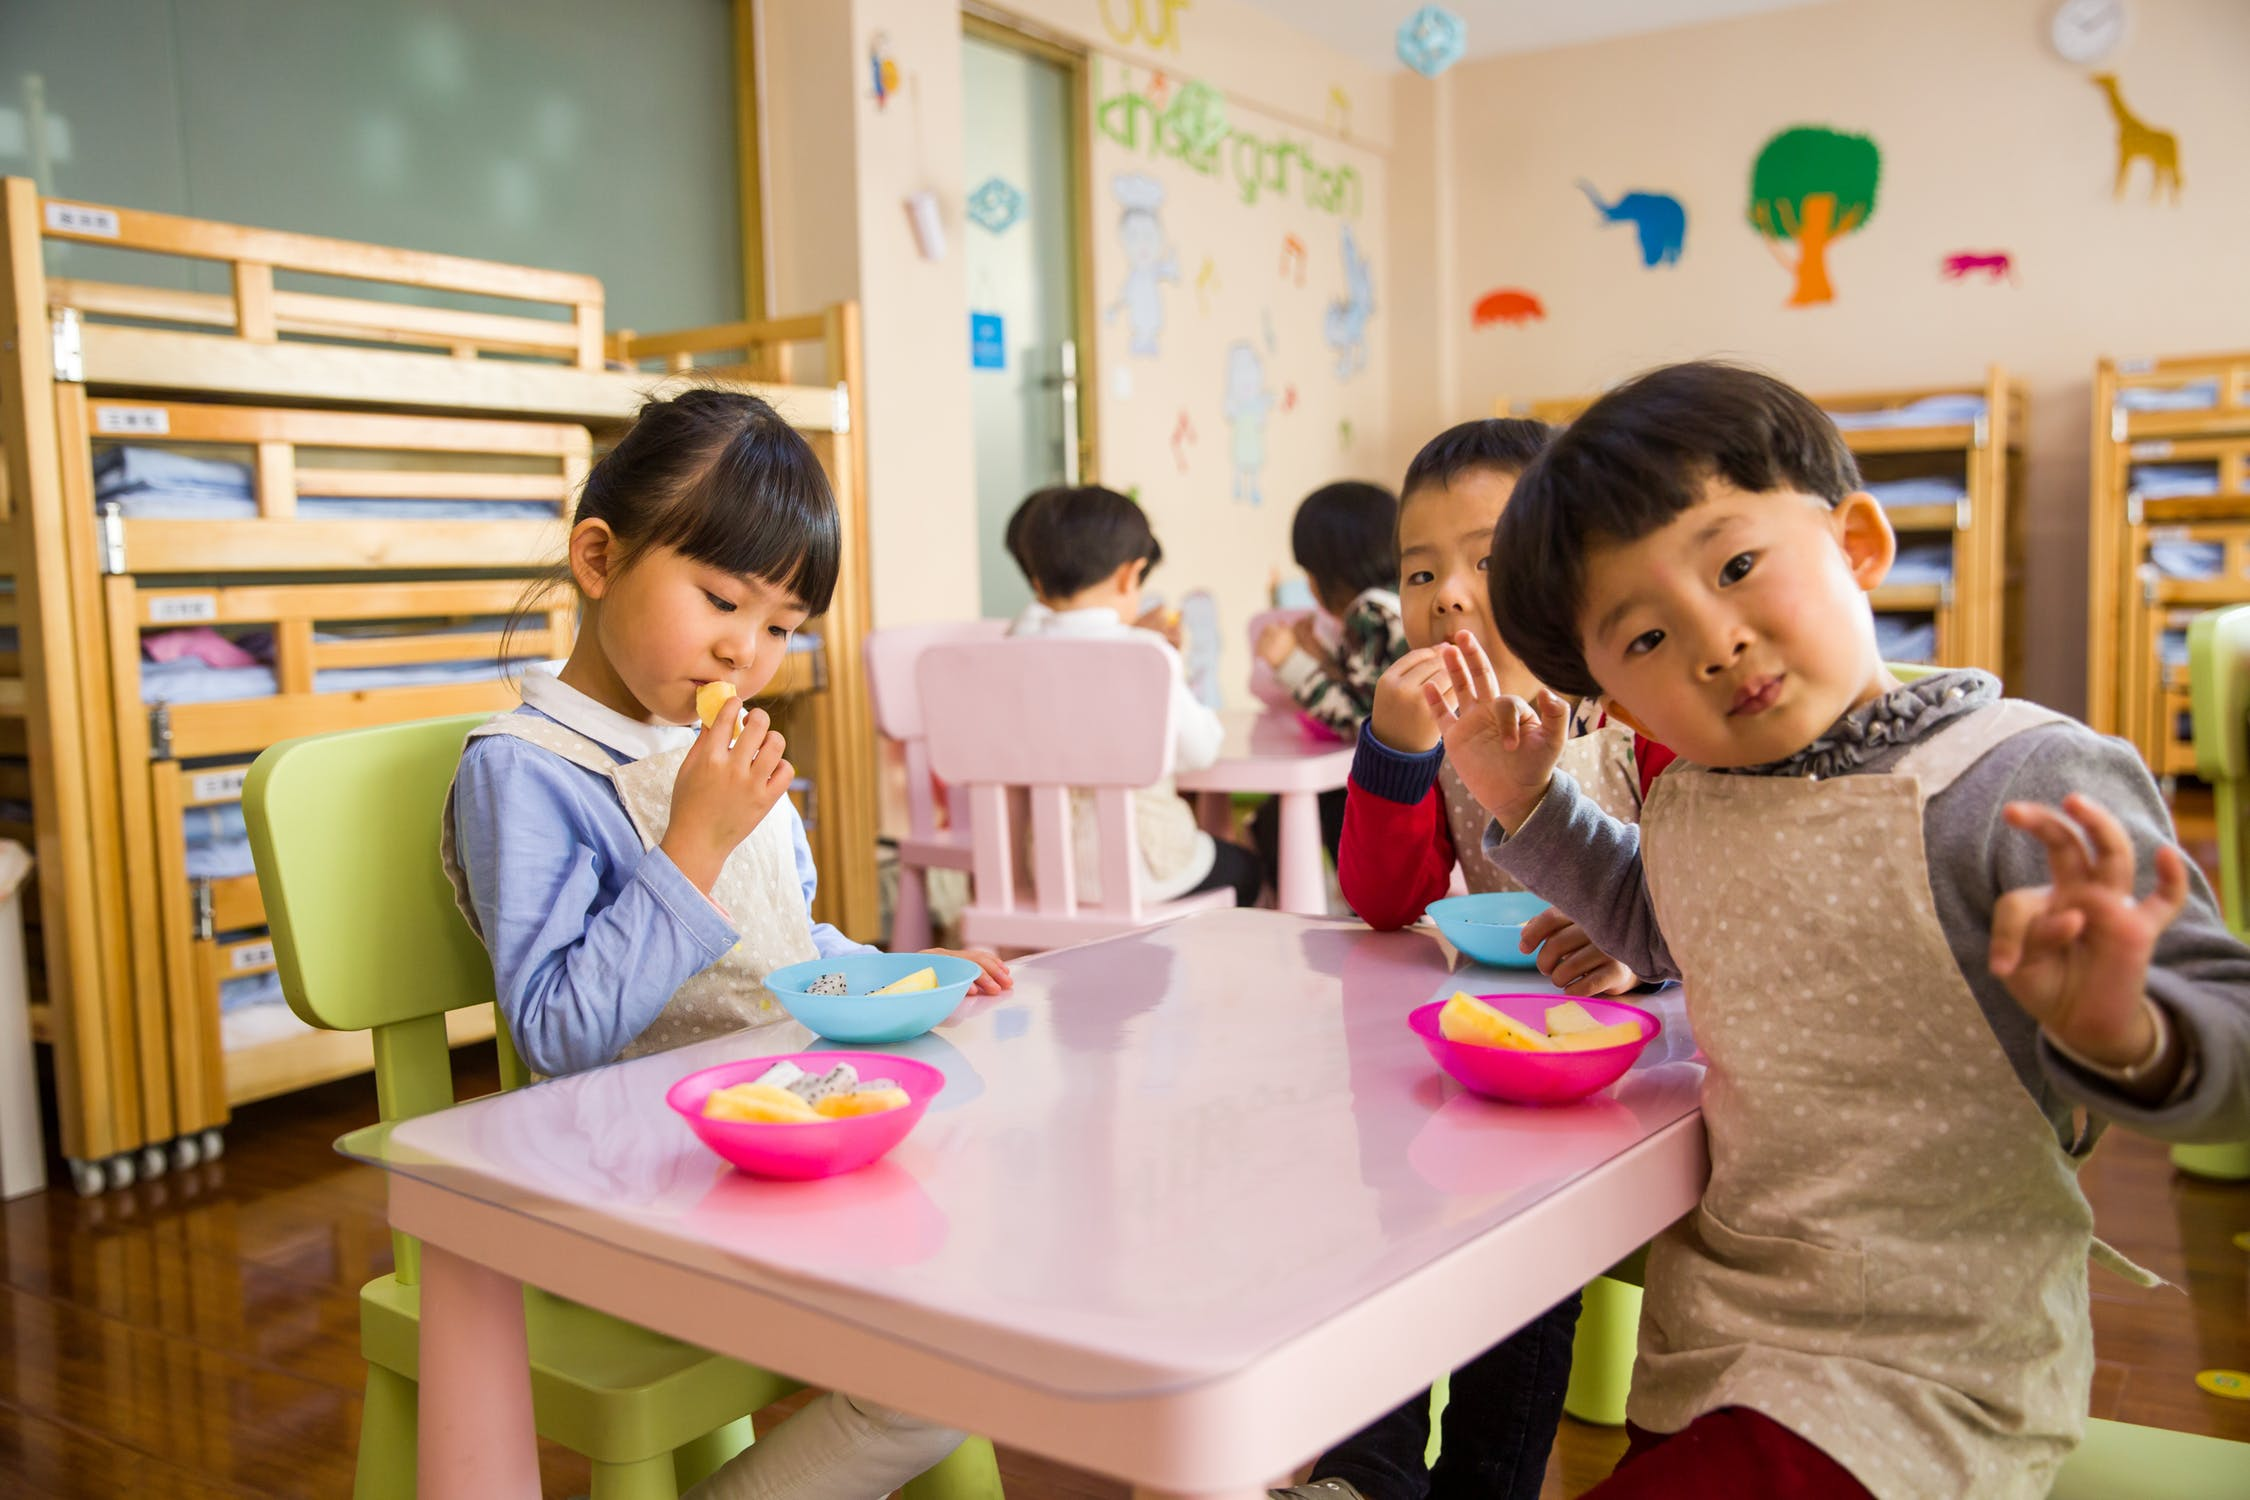 Feed the Kids for Food Fitness and Stay Fit with Woodworking